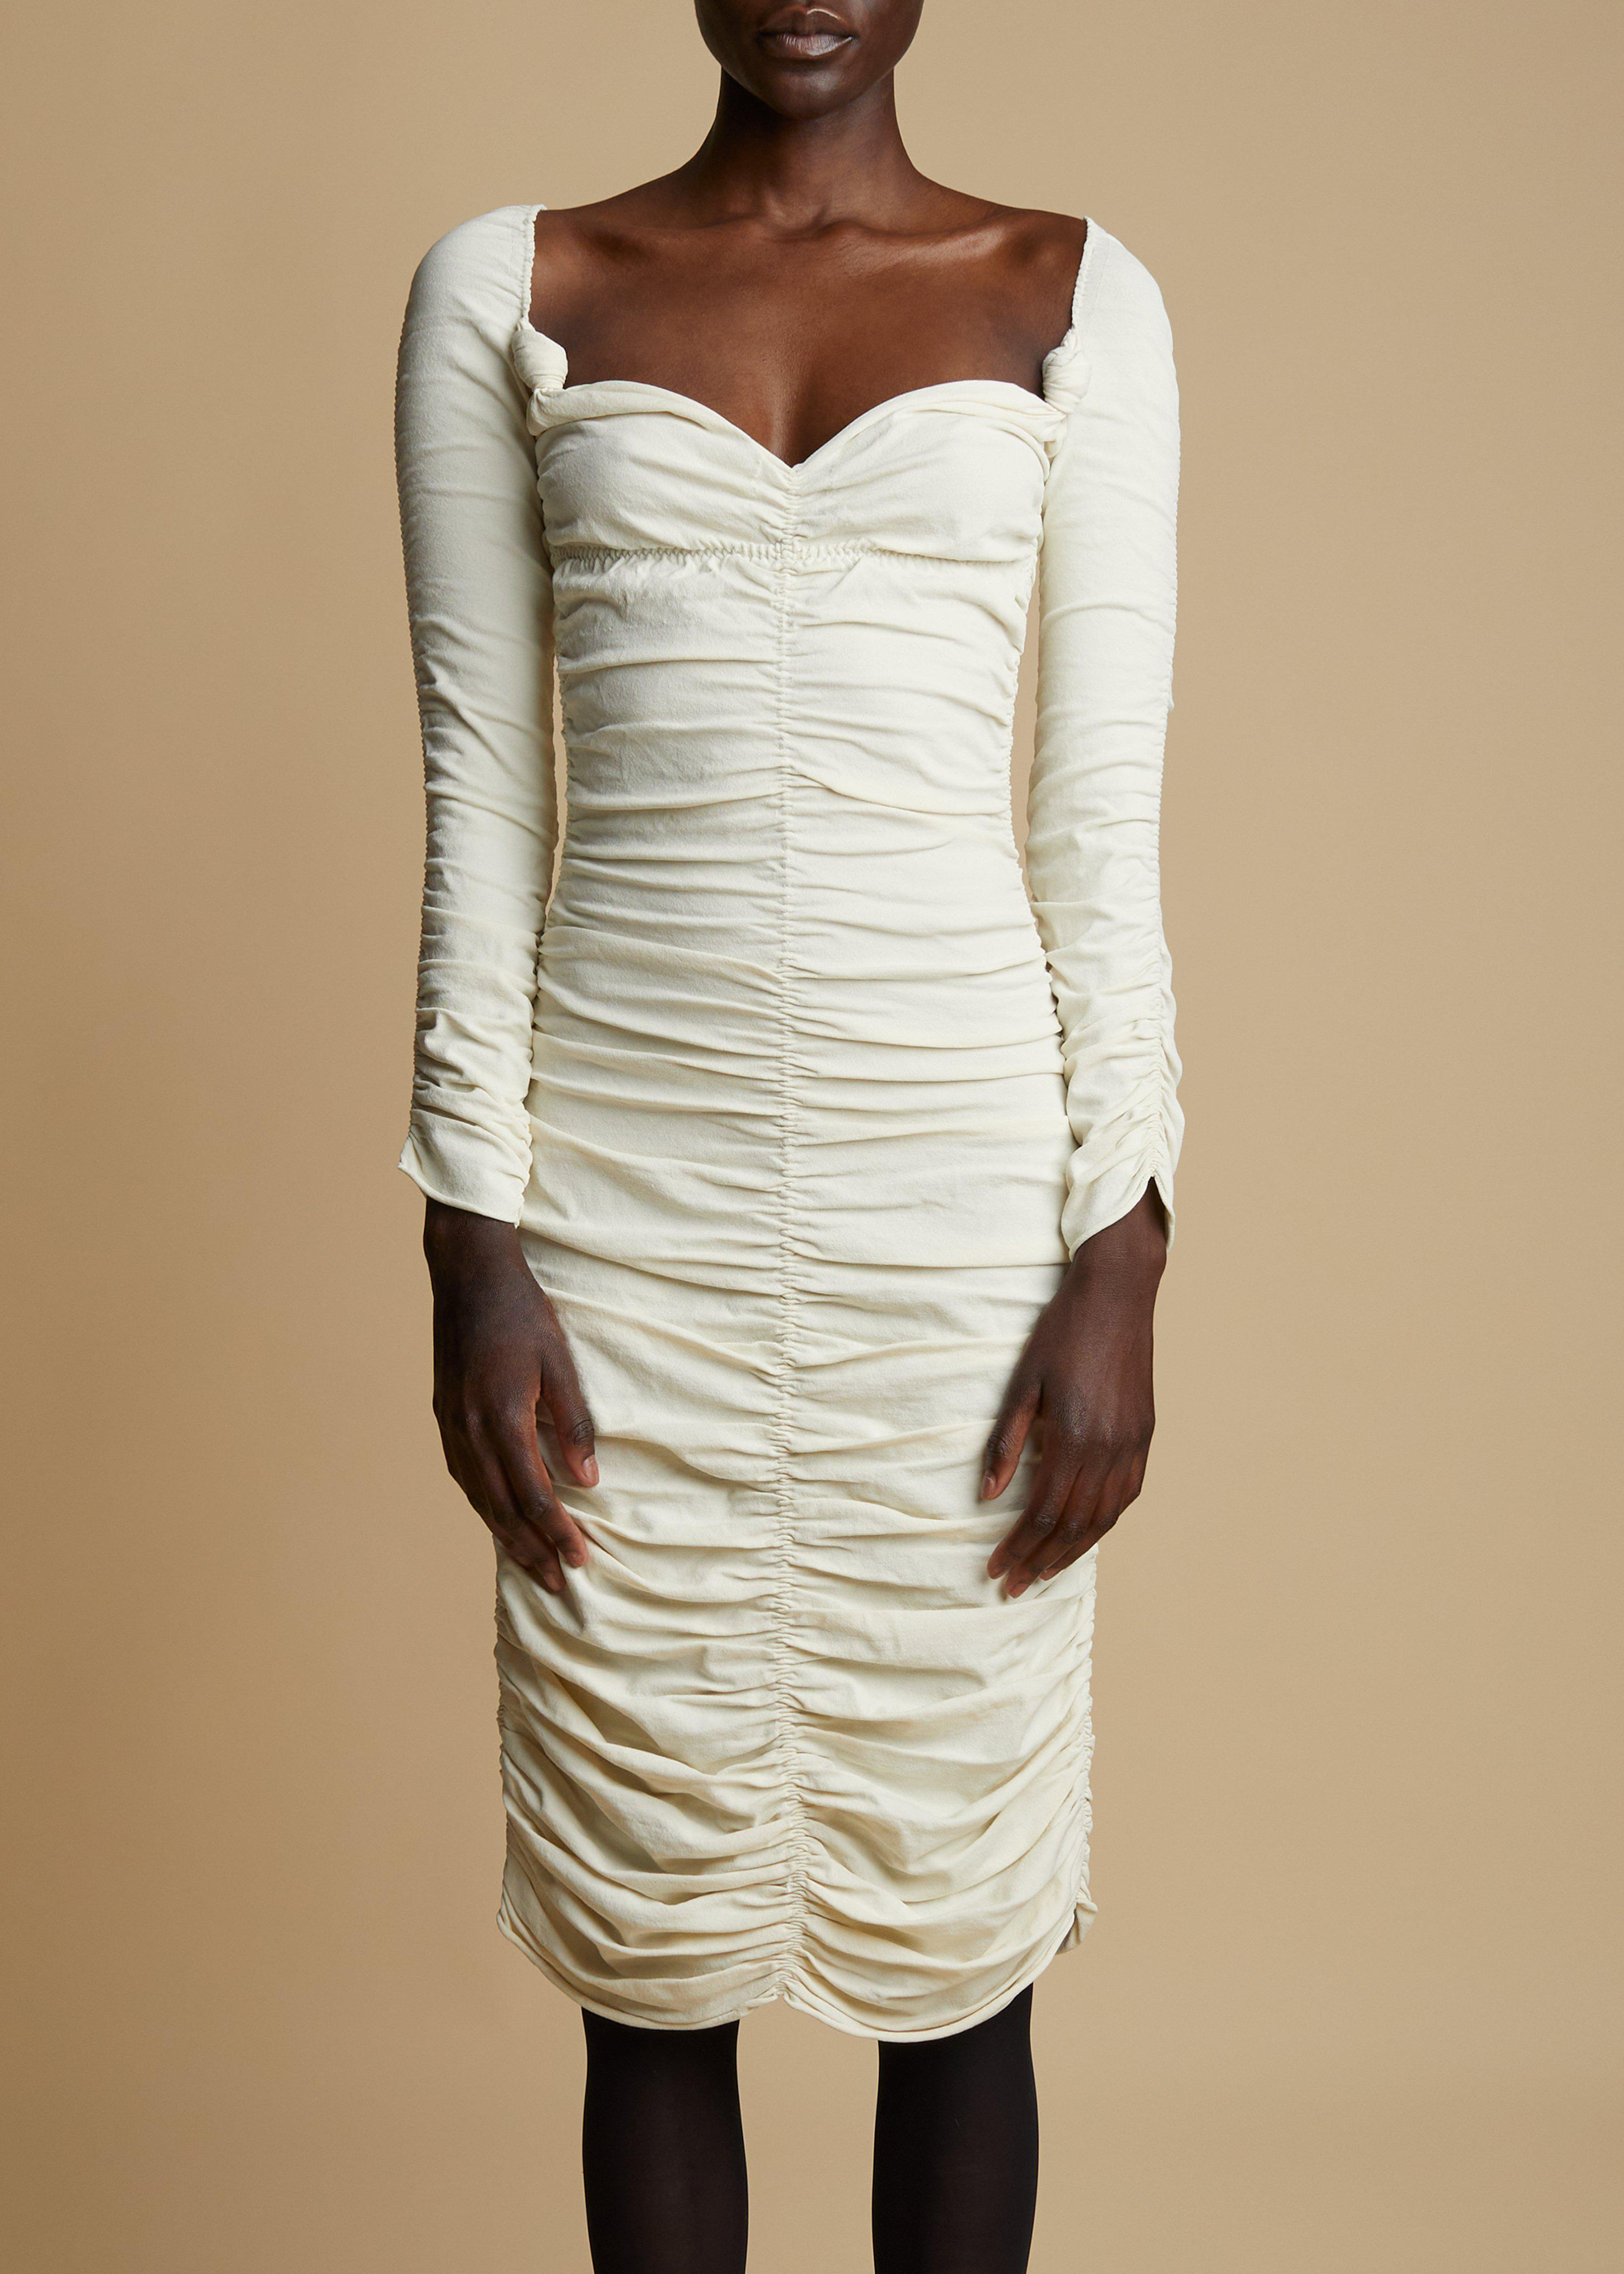 The Charmaine Dress in Ivory 1